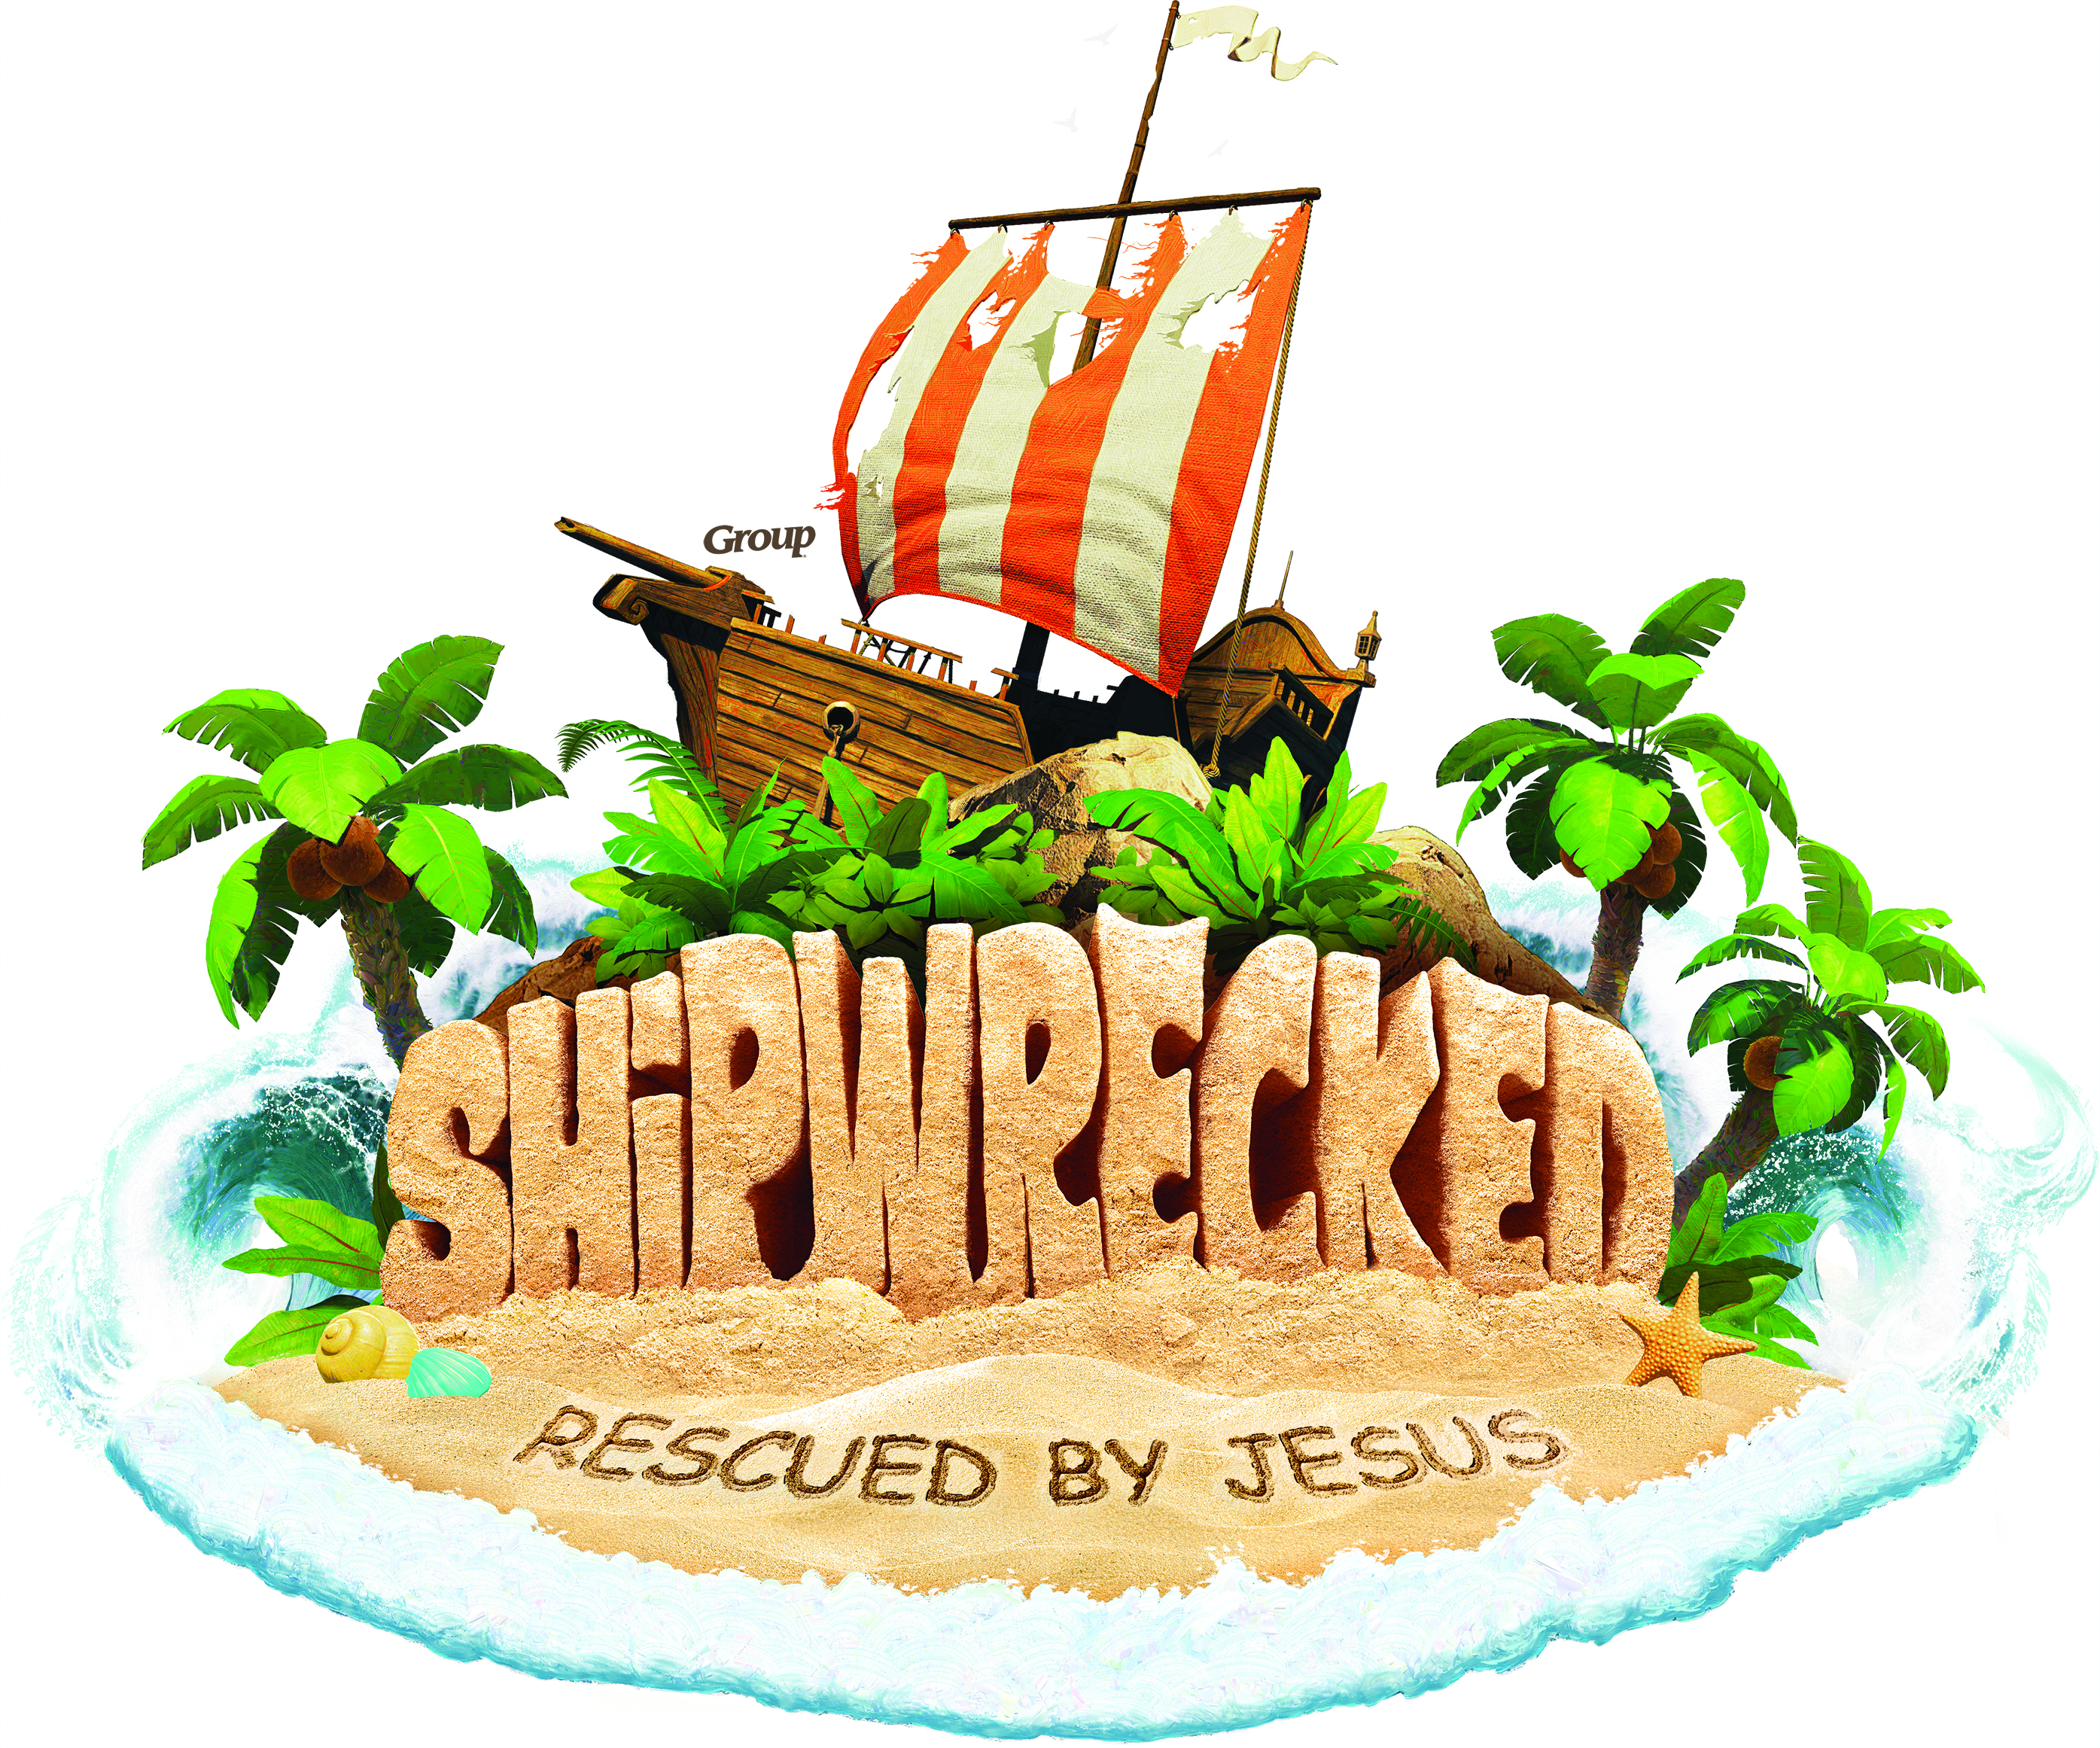 Shipwrecked Vbs | Free Resources & Downloads - Free Printable Vacation Bible School Materials